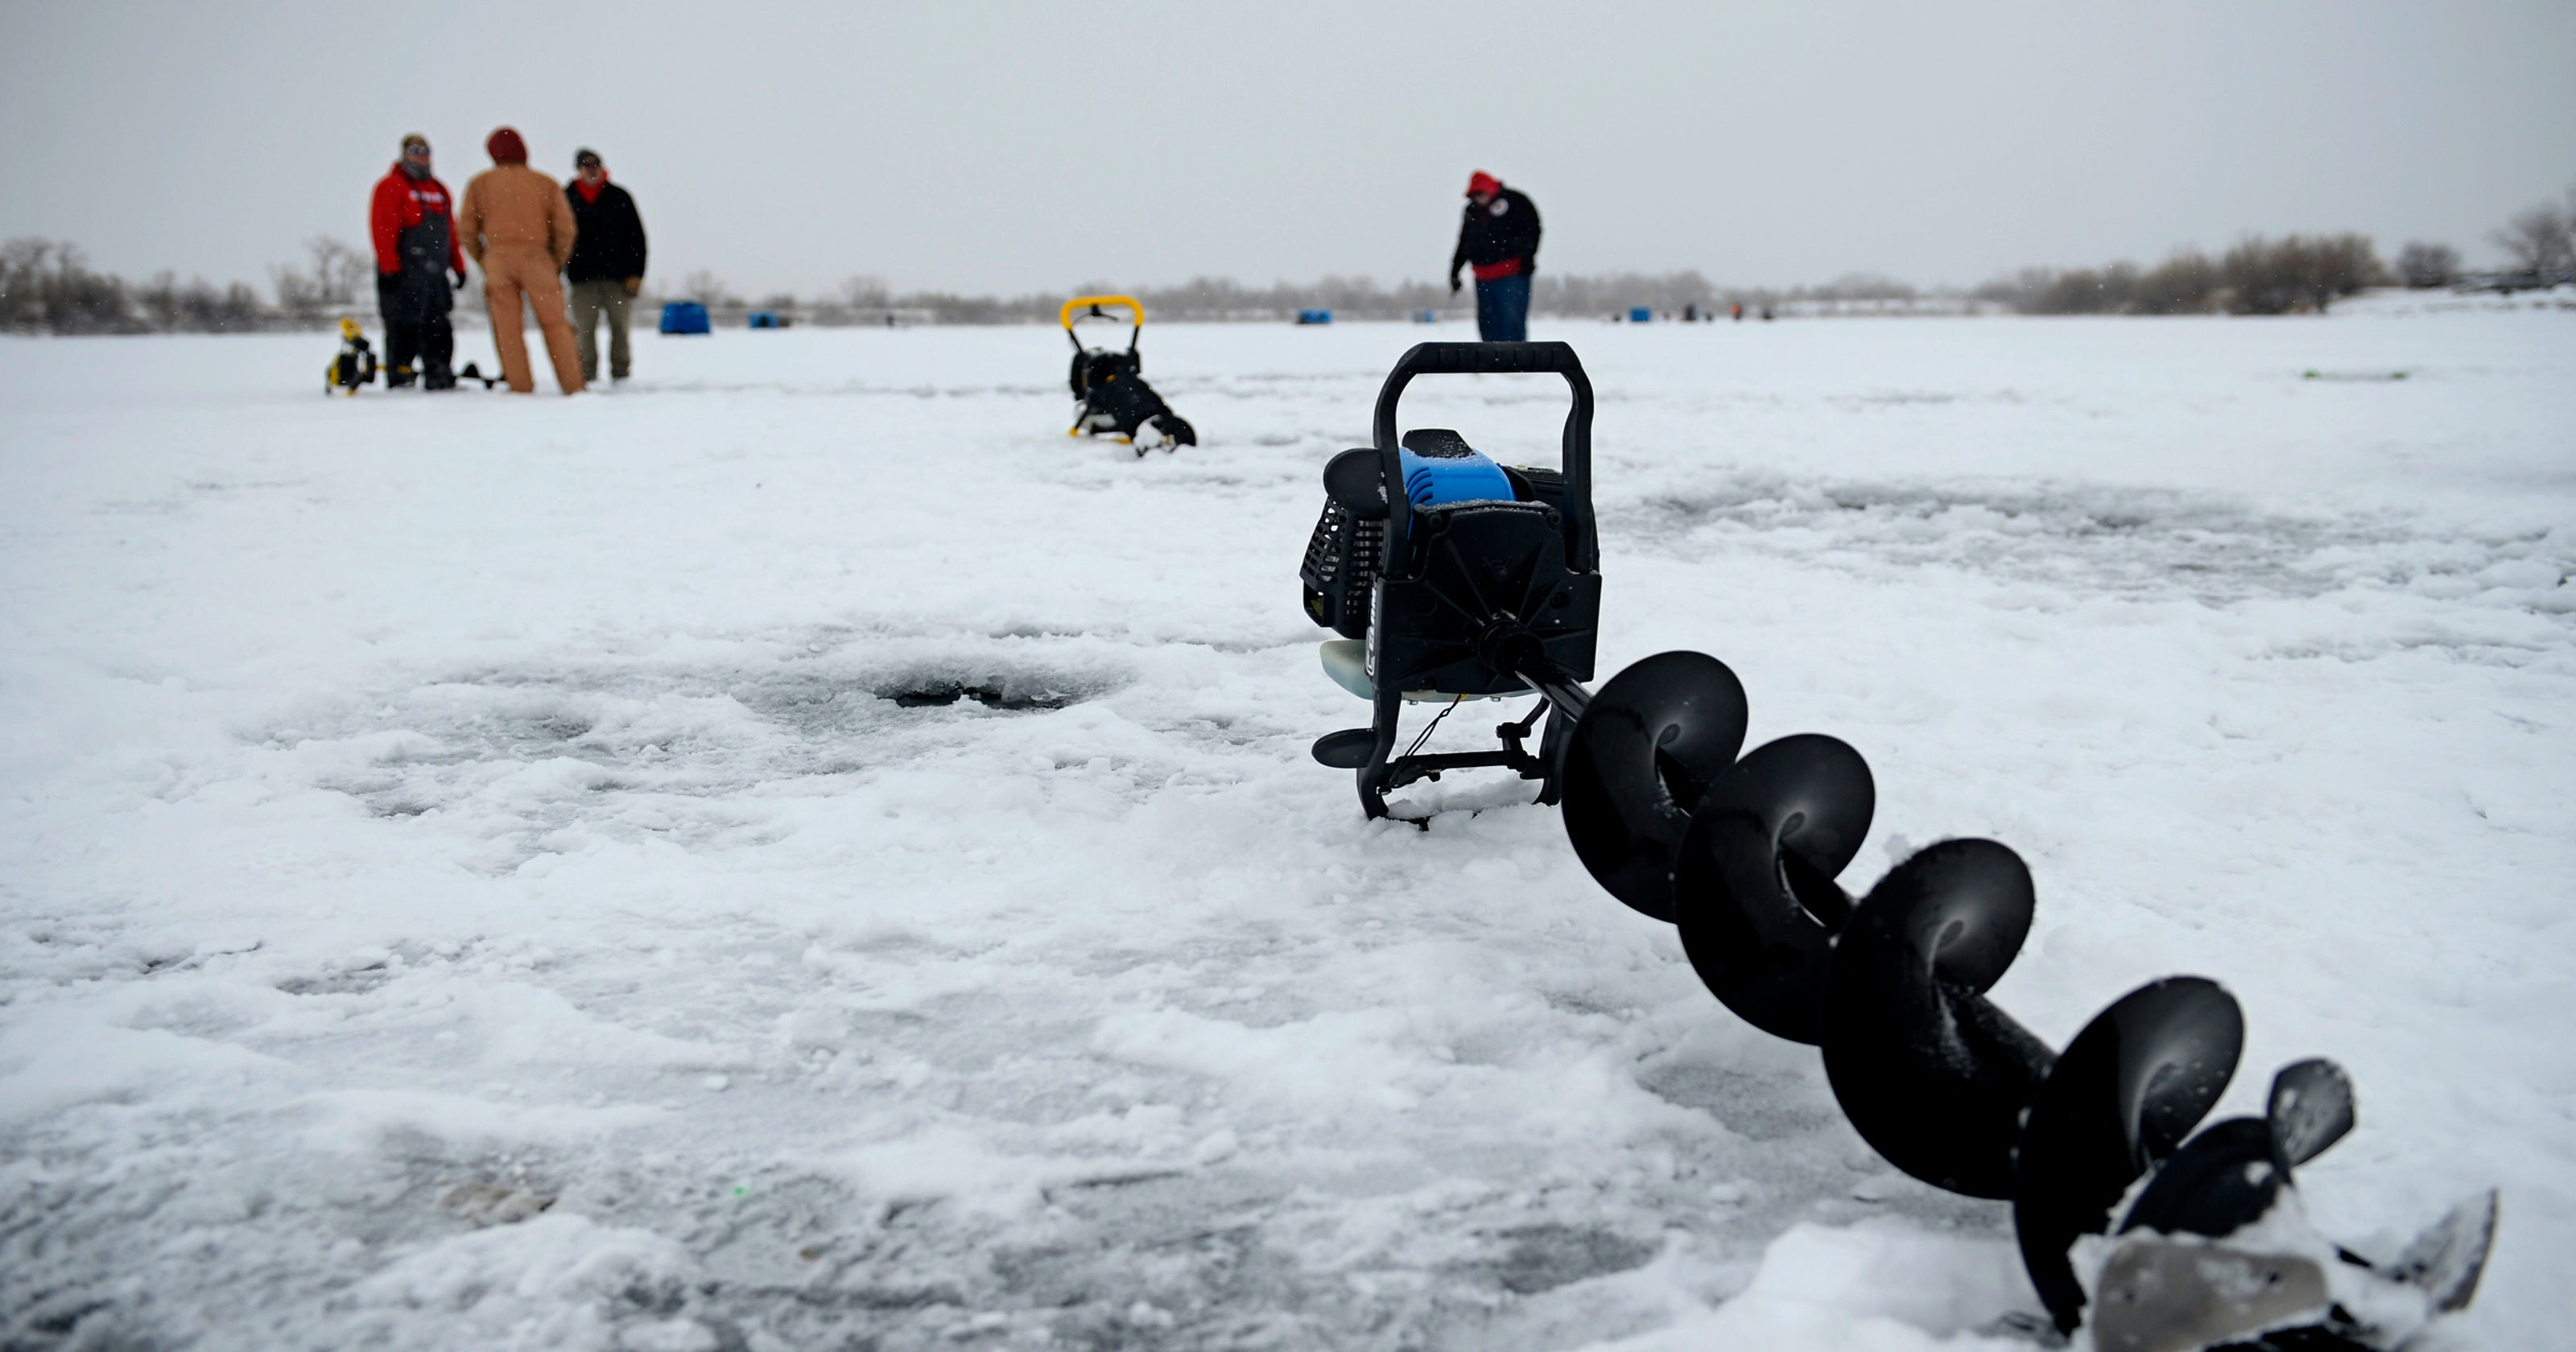 Try ice fishing at Scheels demo day